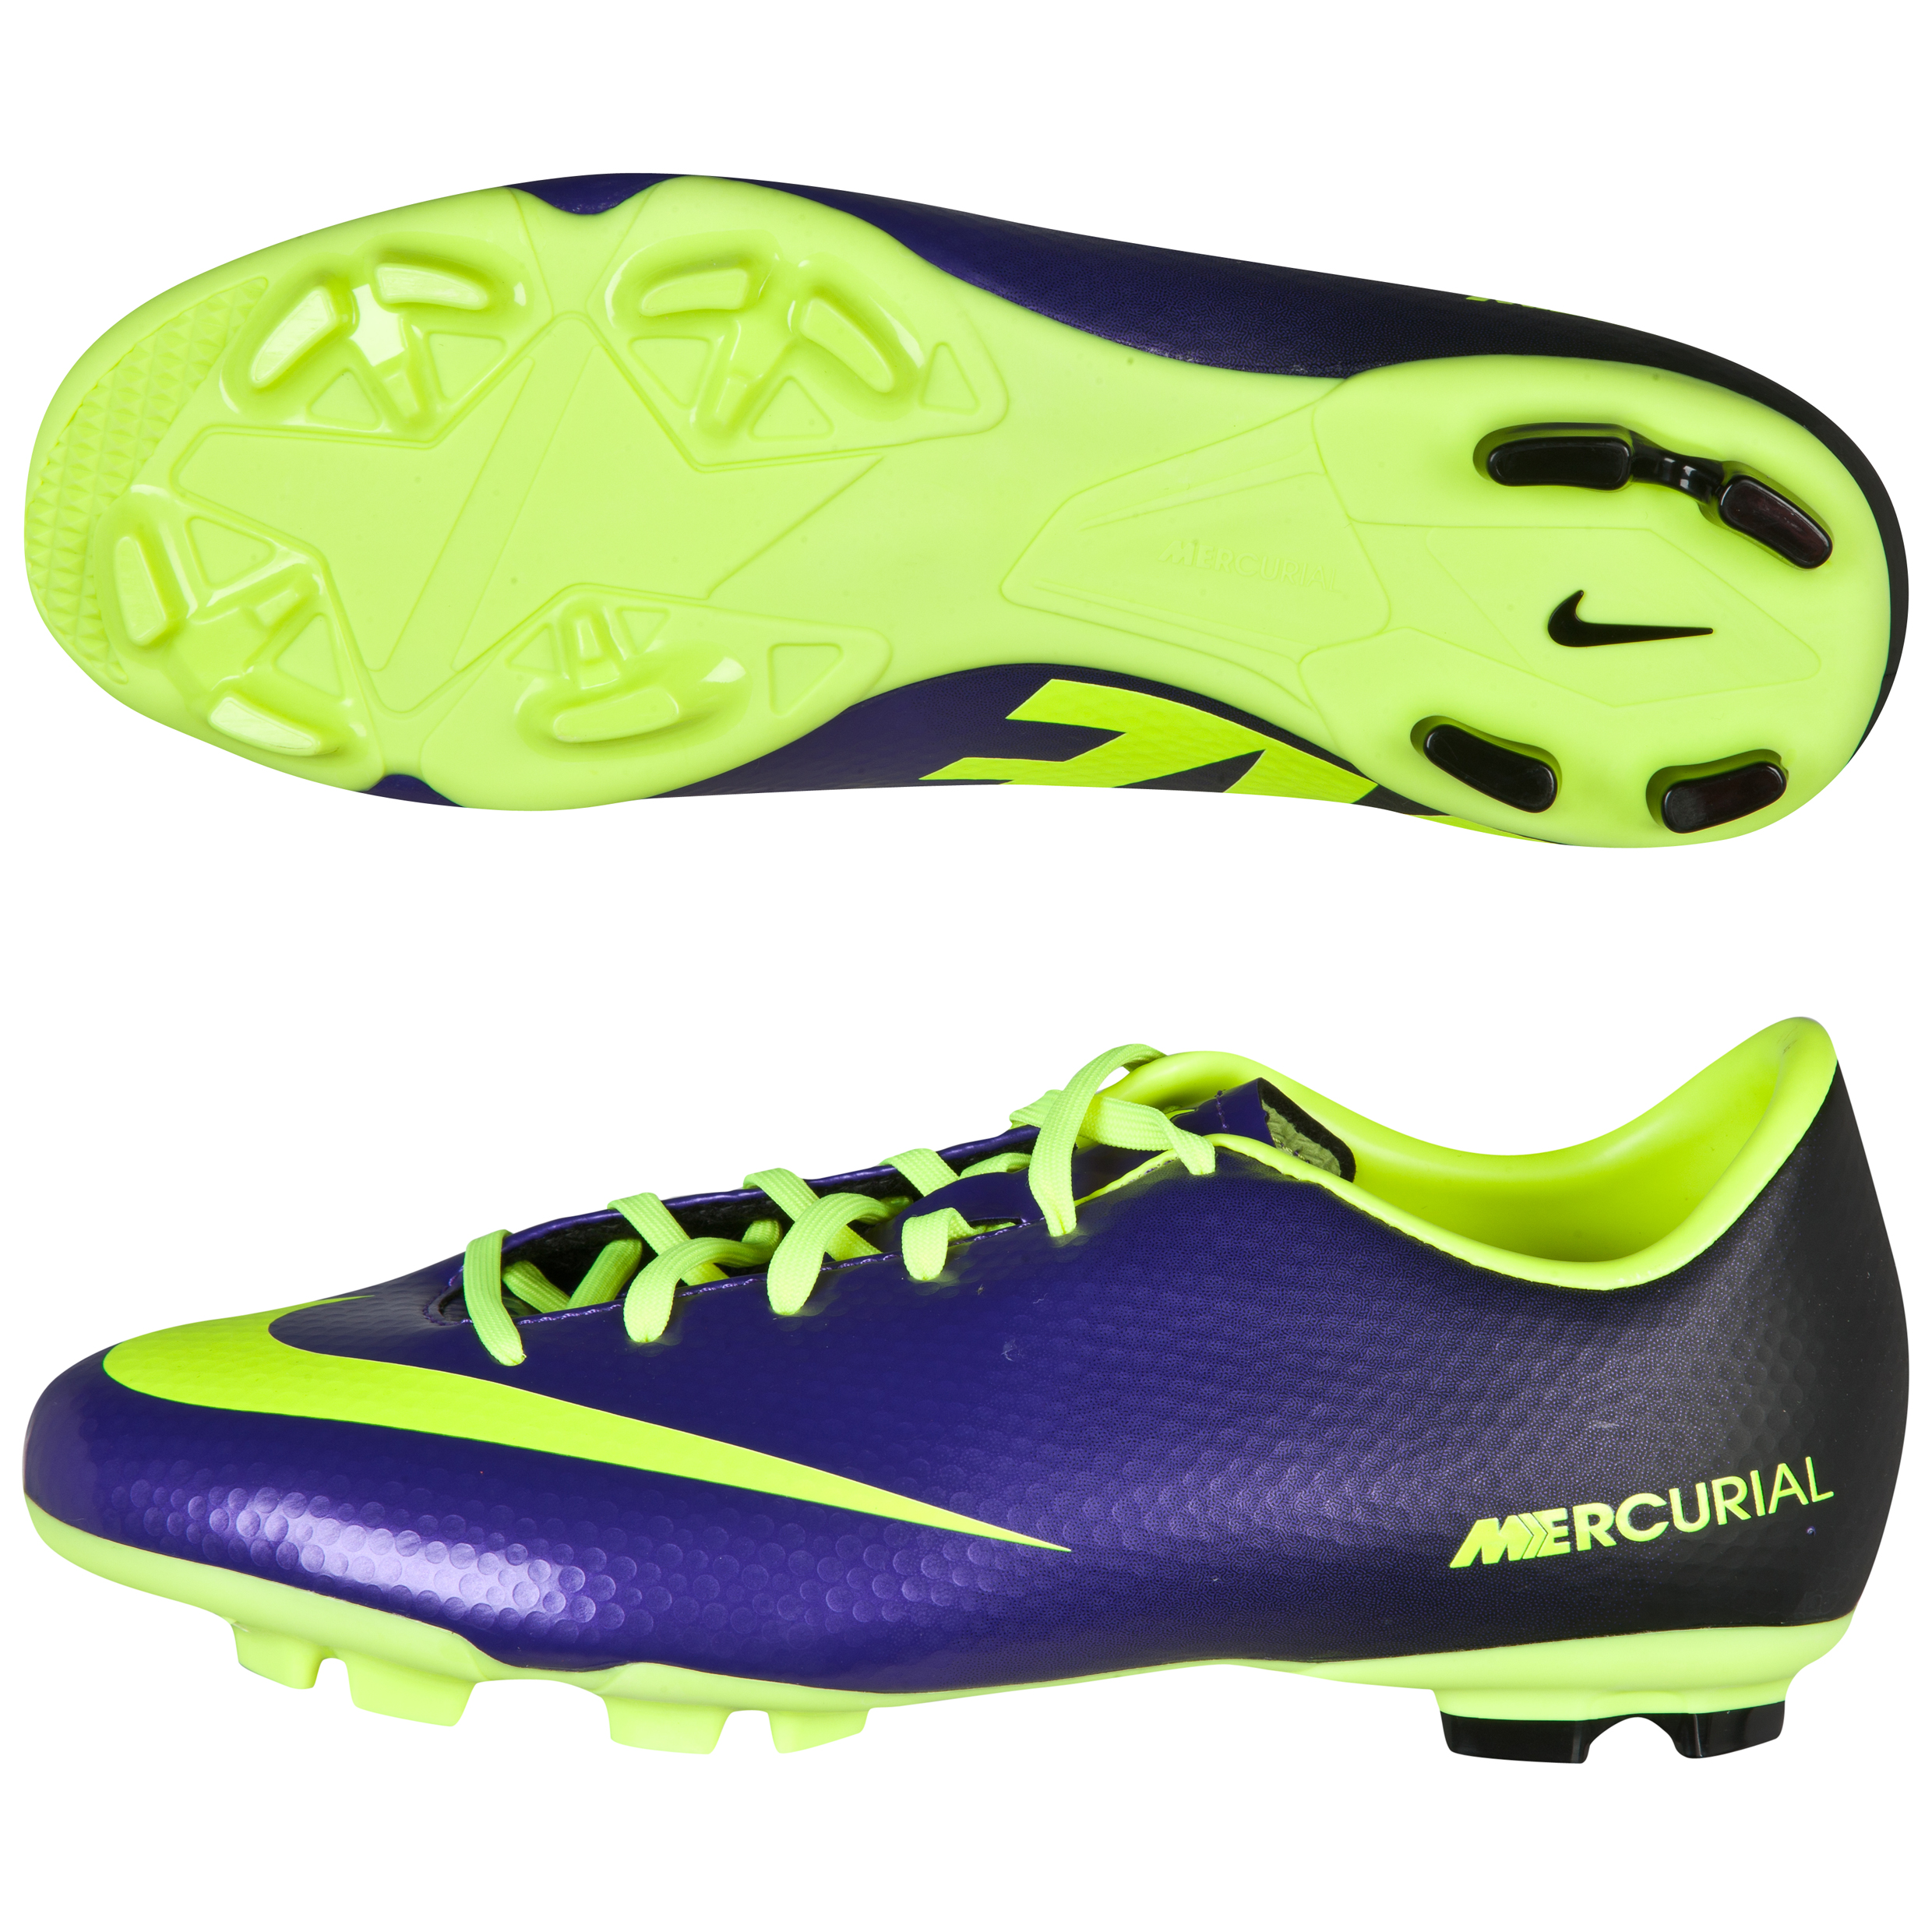 Nike Mercurial Victory Iv Firm Ground Football Boots - Kids-Electro Purple/Volt/Black Purple